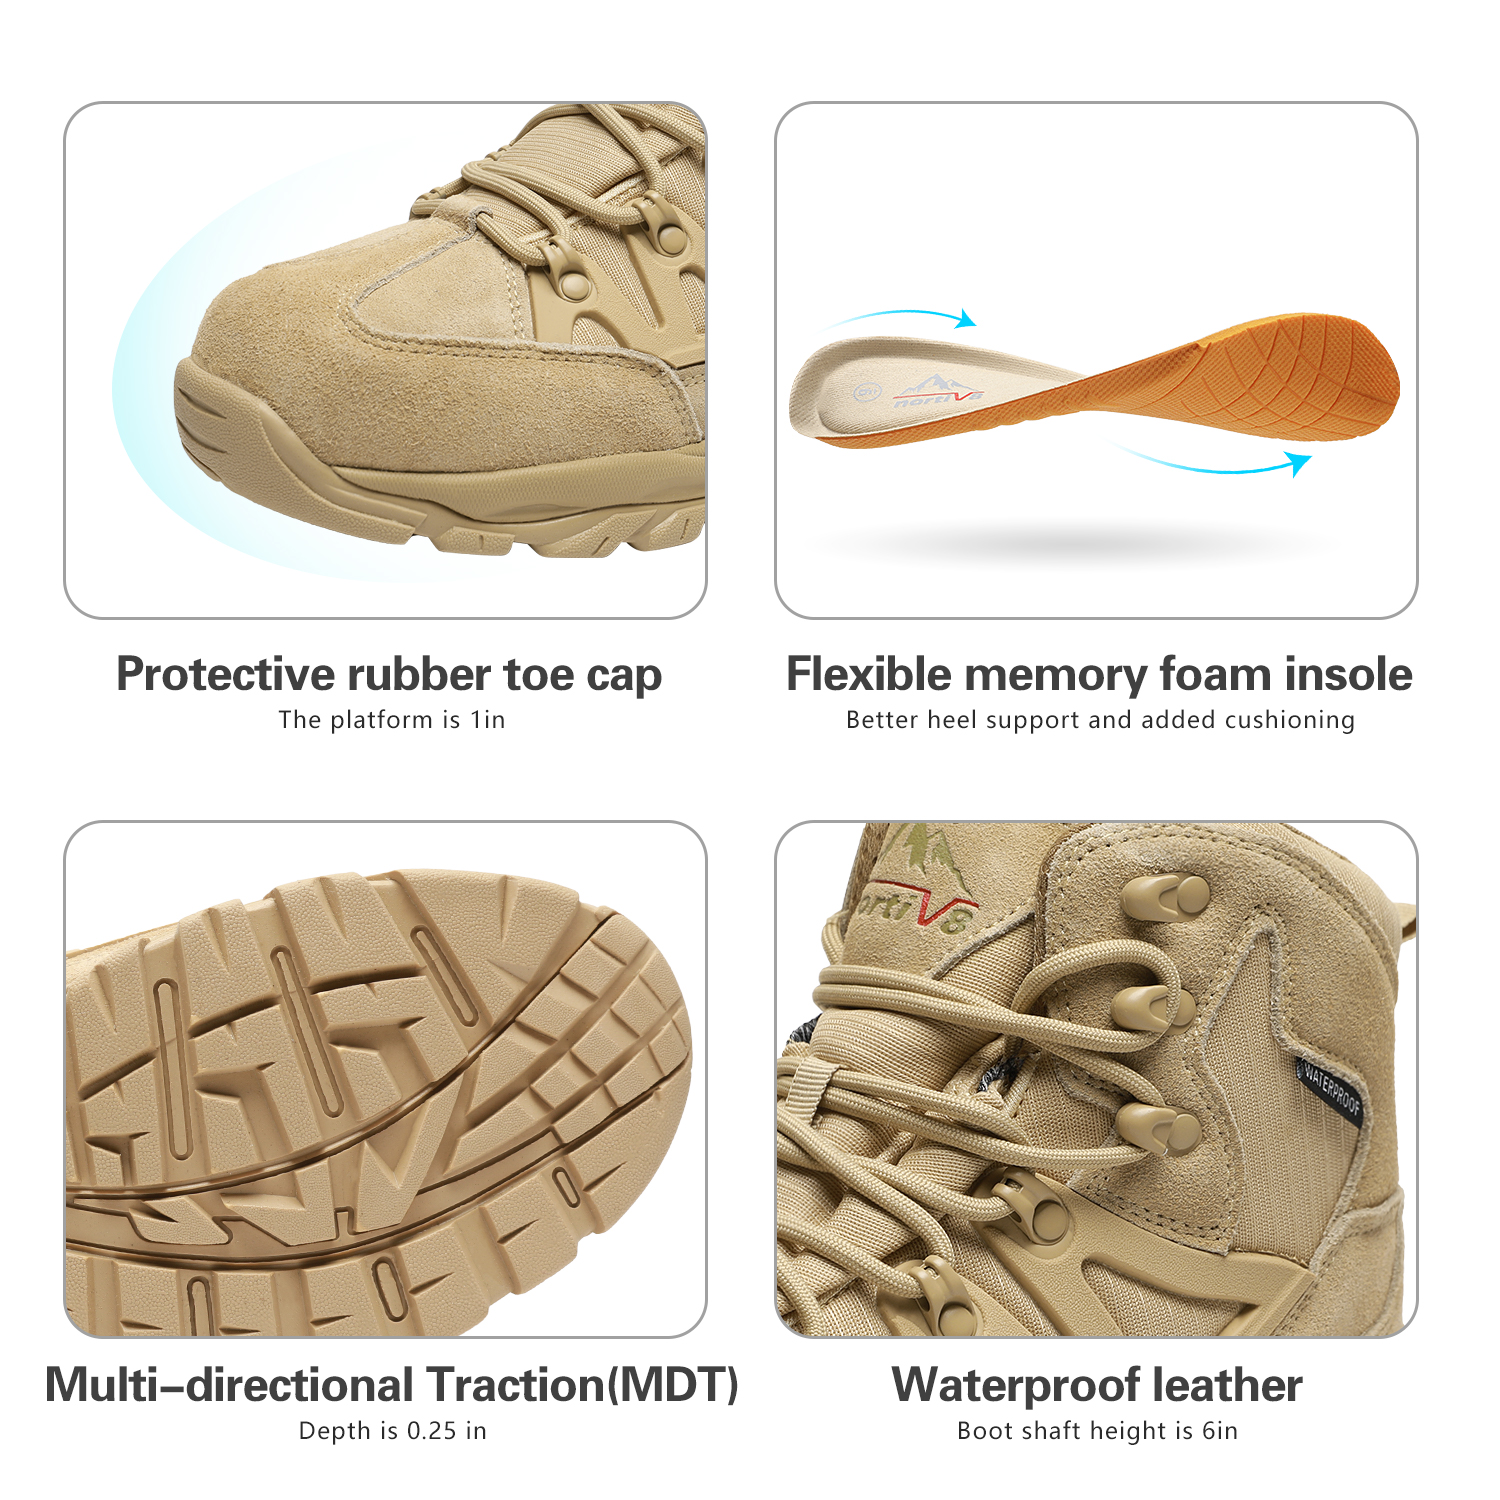 NORTIV-8-Men-039-s-Ankle-Waterproof-Hiking-Boots-Lightweight-Backpacking-Work-Shoes thumbnail 41